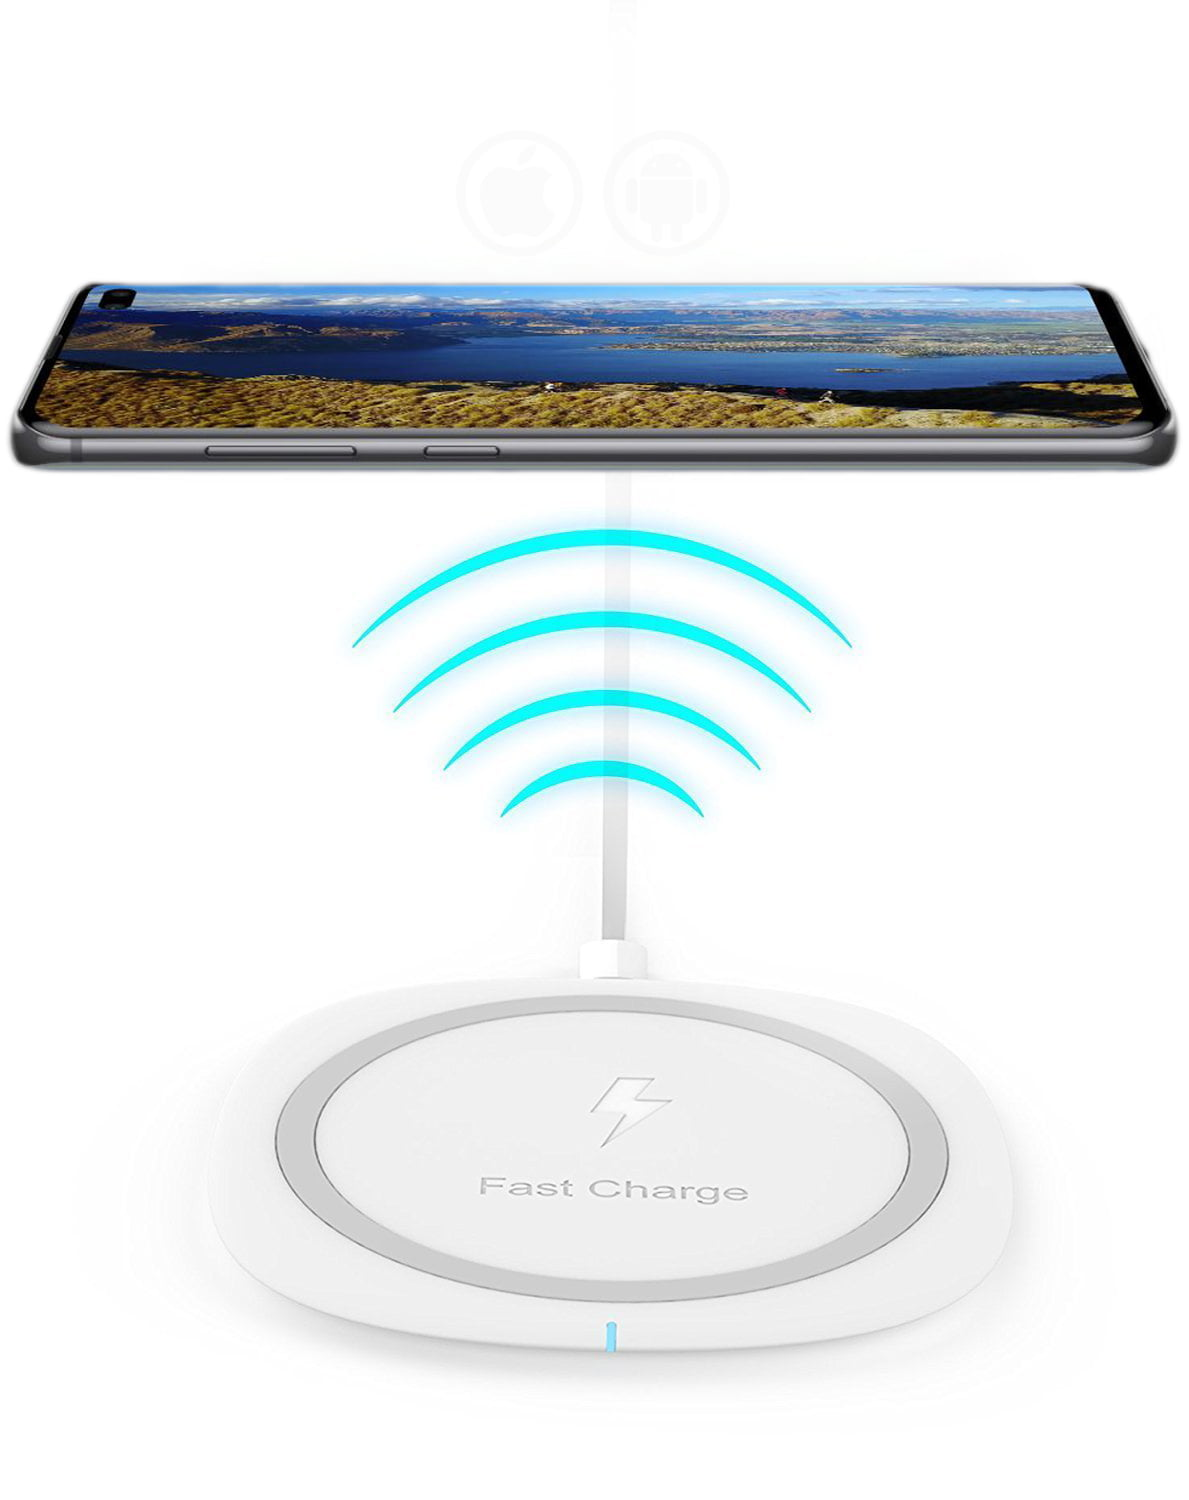 Qi Certified Fast Charge Wireless Charger for Samsung Galaxy S10 5G